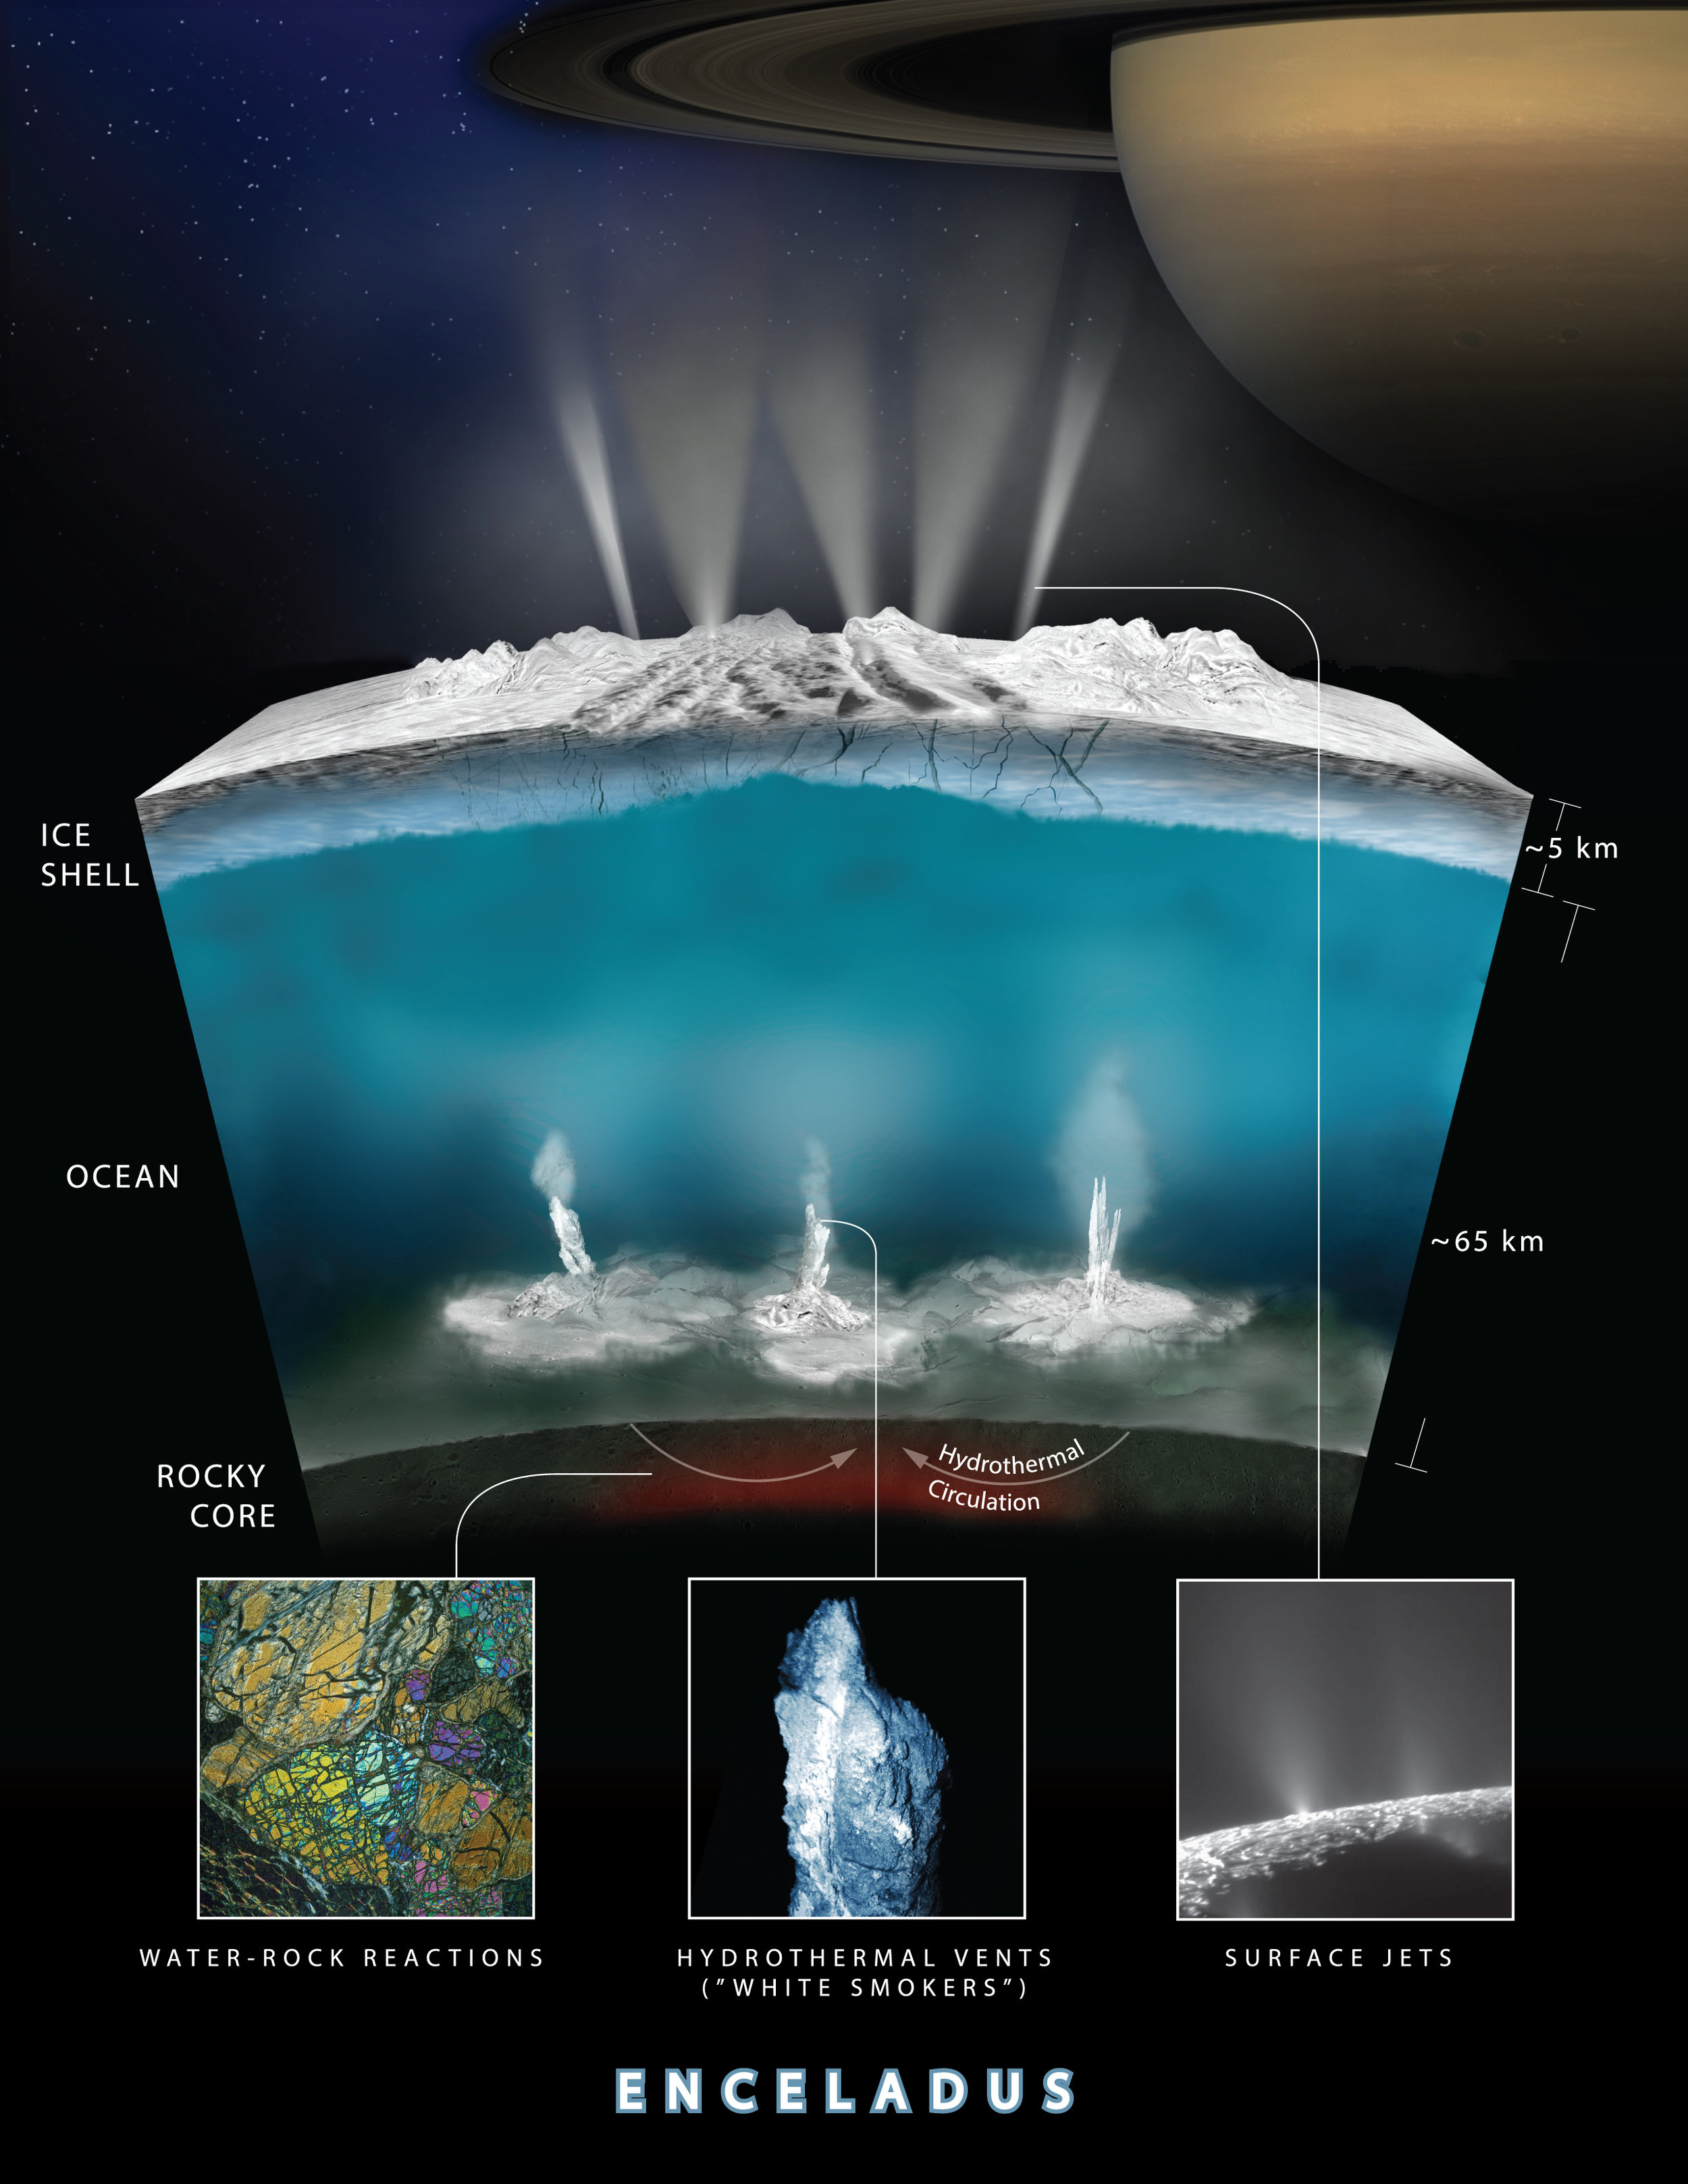 This graphic illustrates how Cassini scientists think water interacts with rock at the bottom of the ocean of Saturn's icy moon Enceladus, producing hydrogen gas. - Image Credits: NASA/JPL-Caltech (click on image to enlarge)